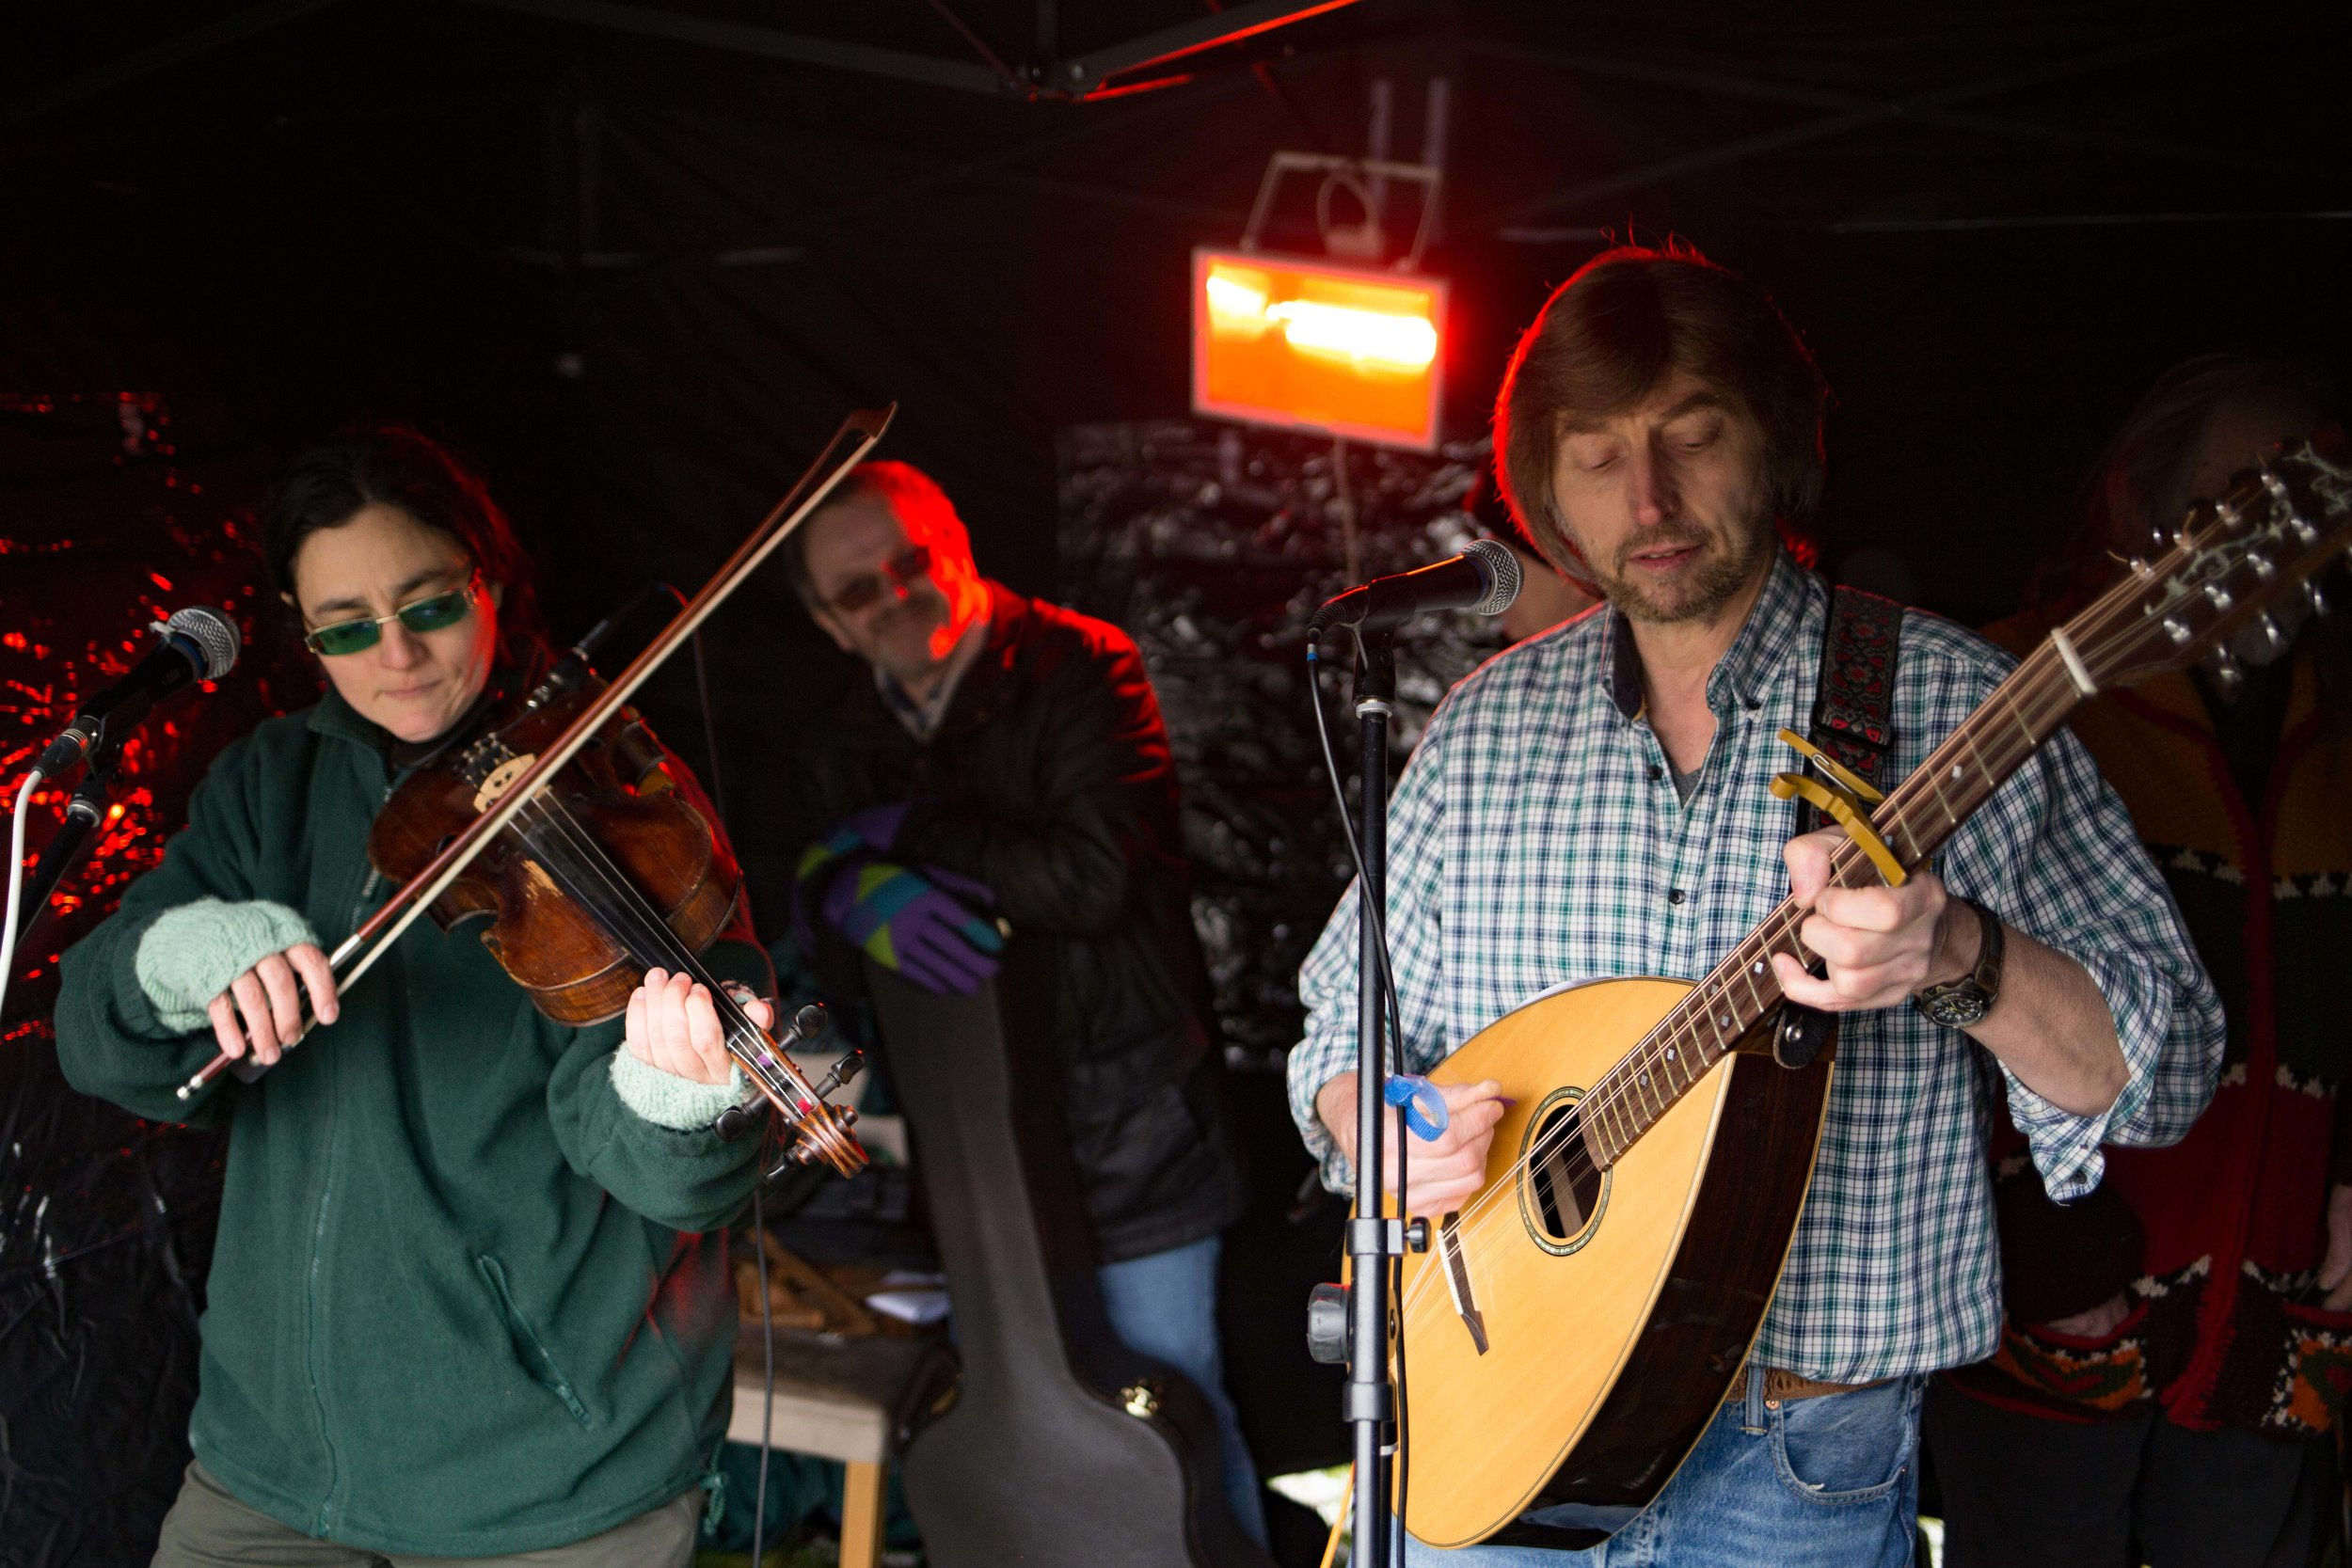 The folk busking tent but The Green Man pub